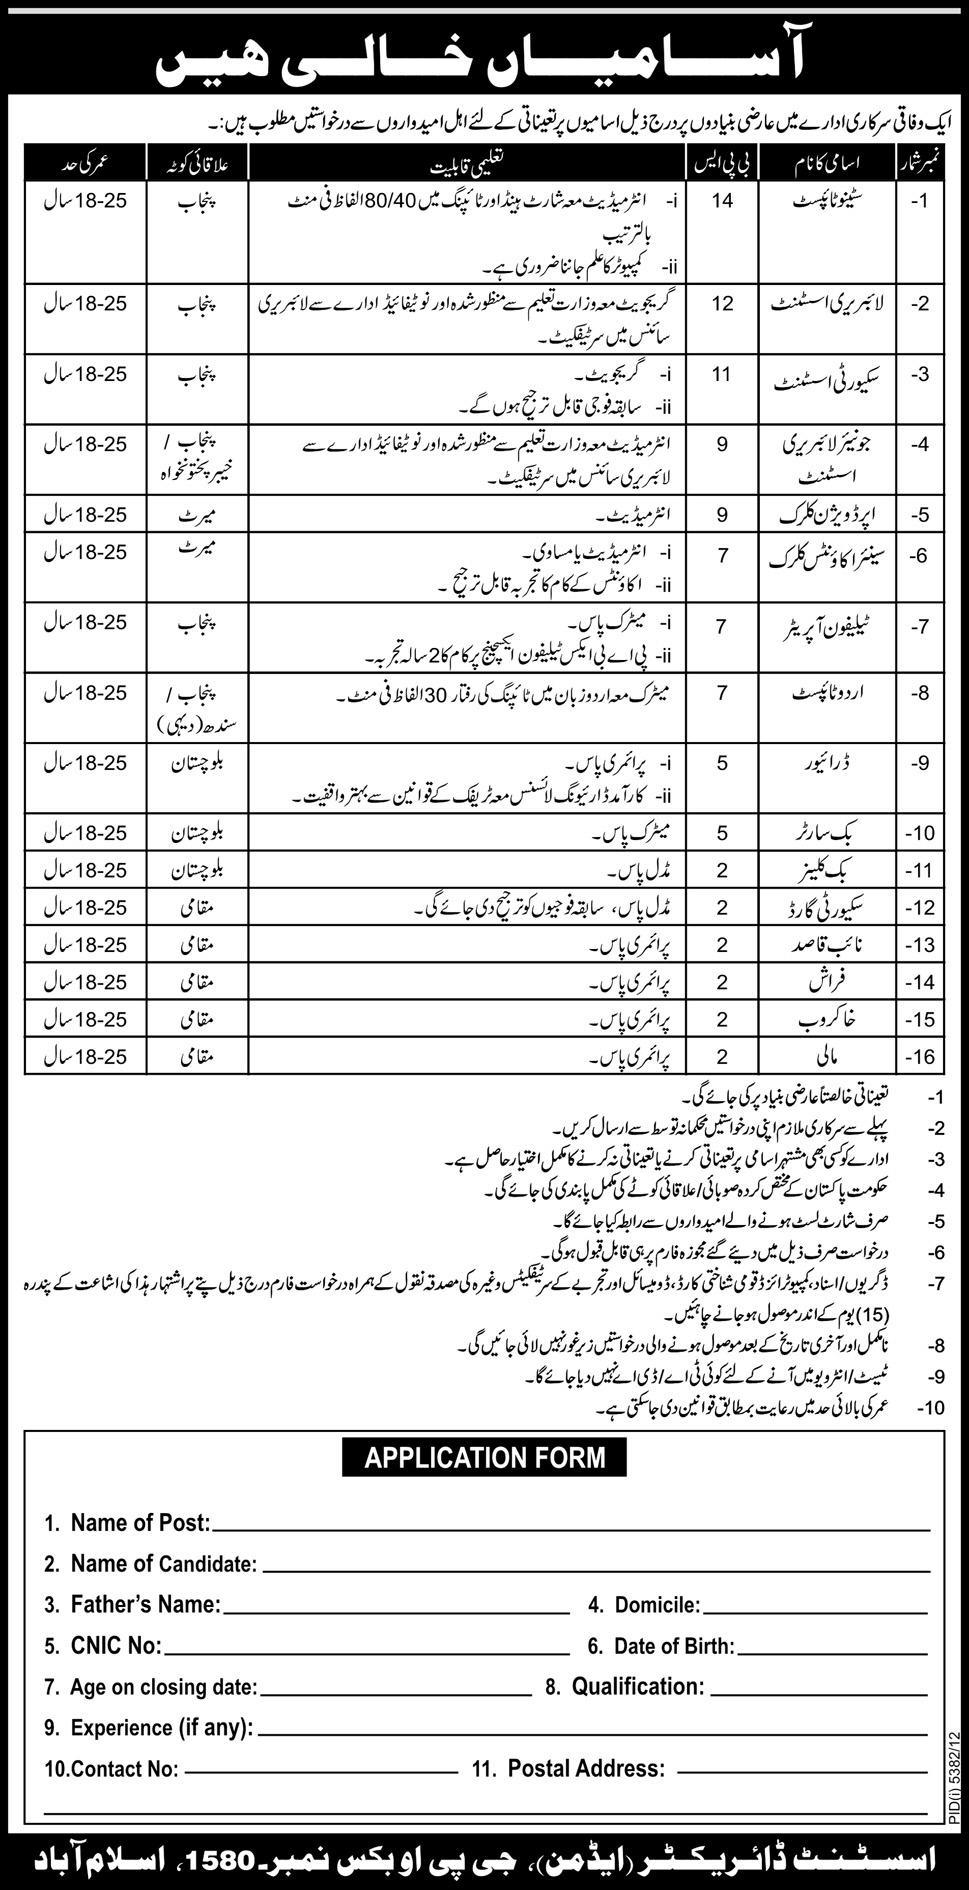 Jobs for Steno Typist & Library Assistant in Government Office, Islamabad